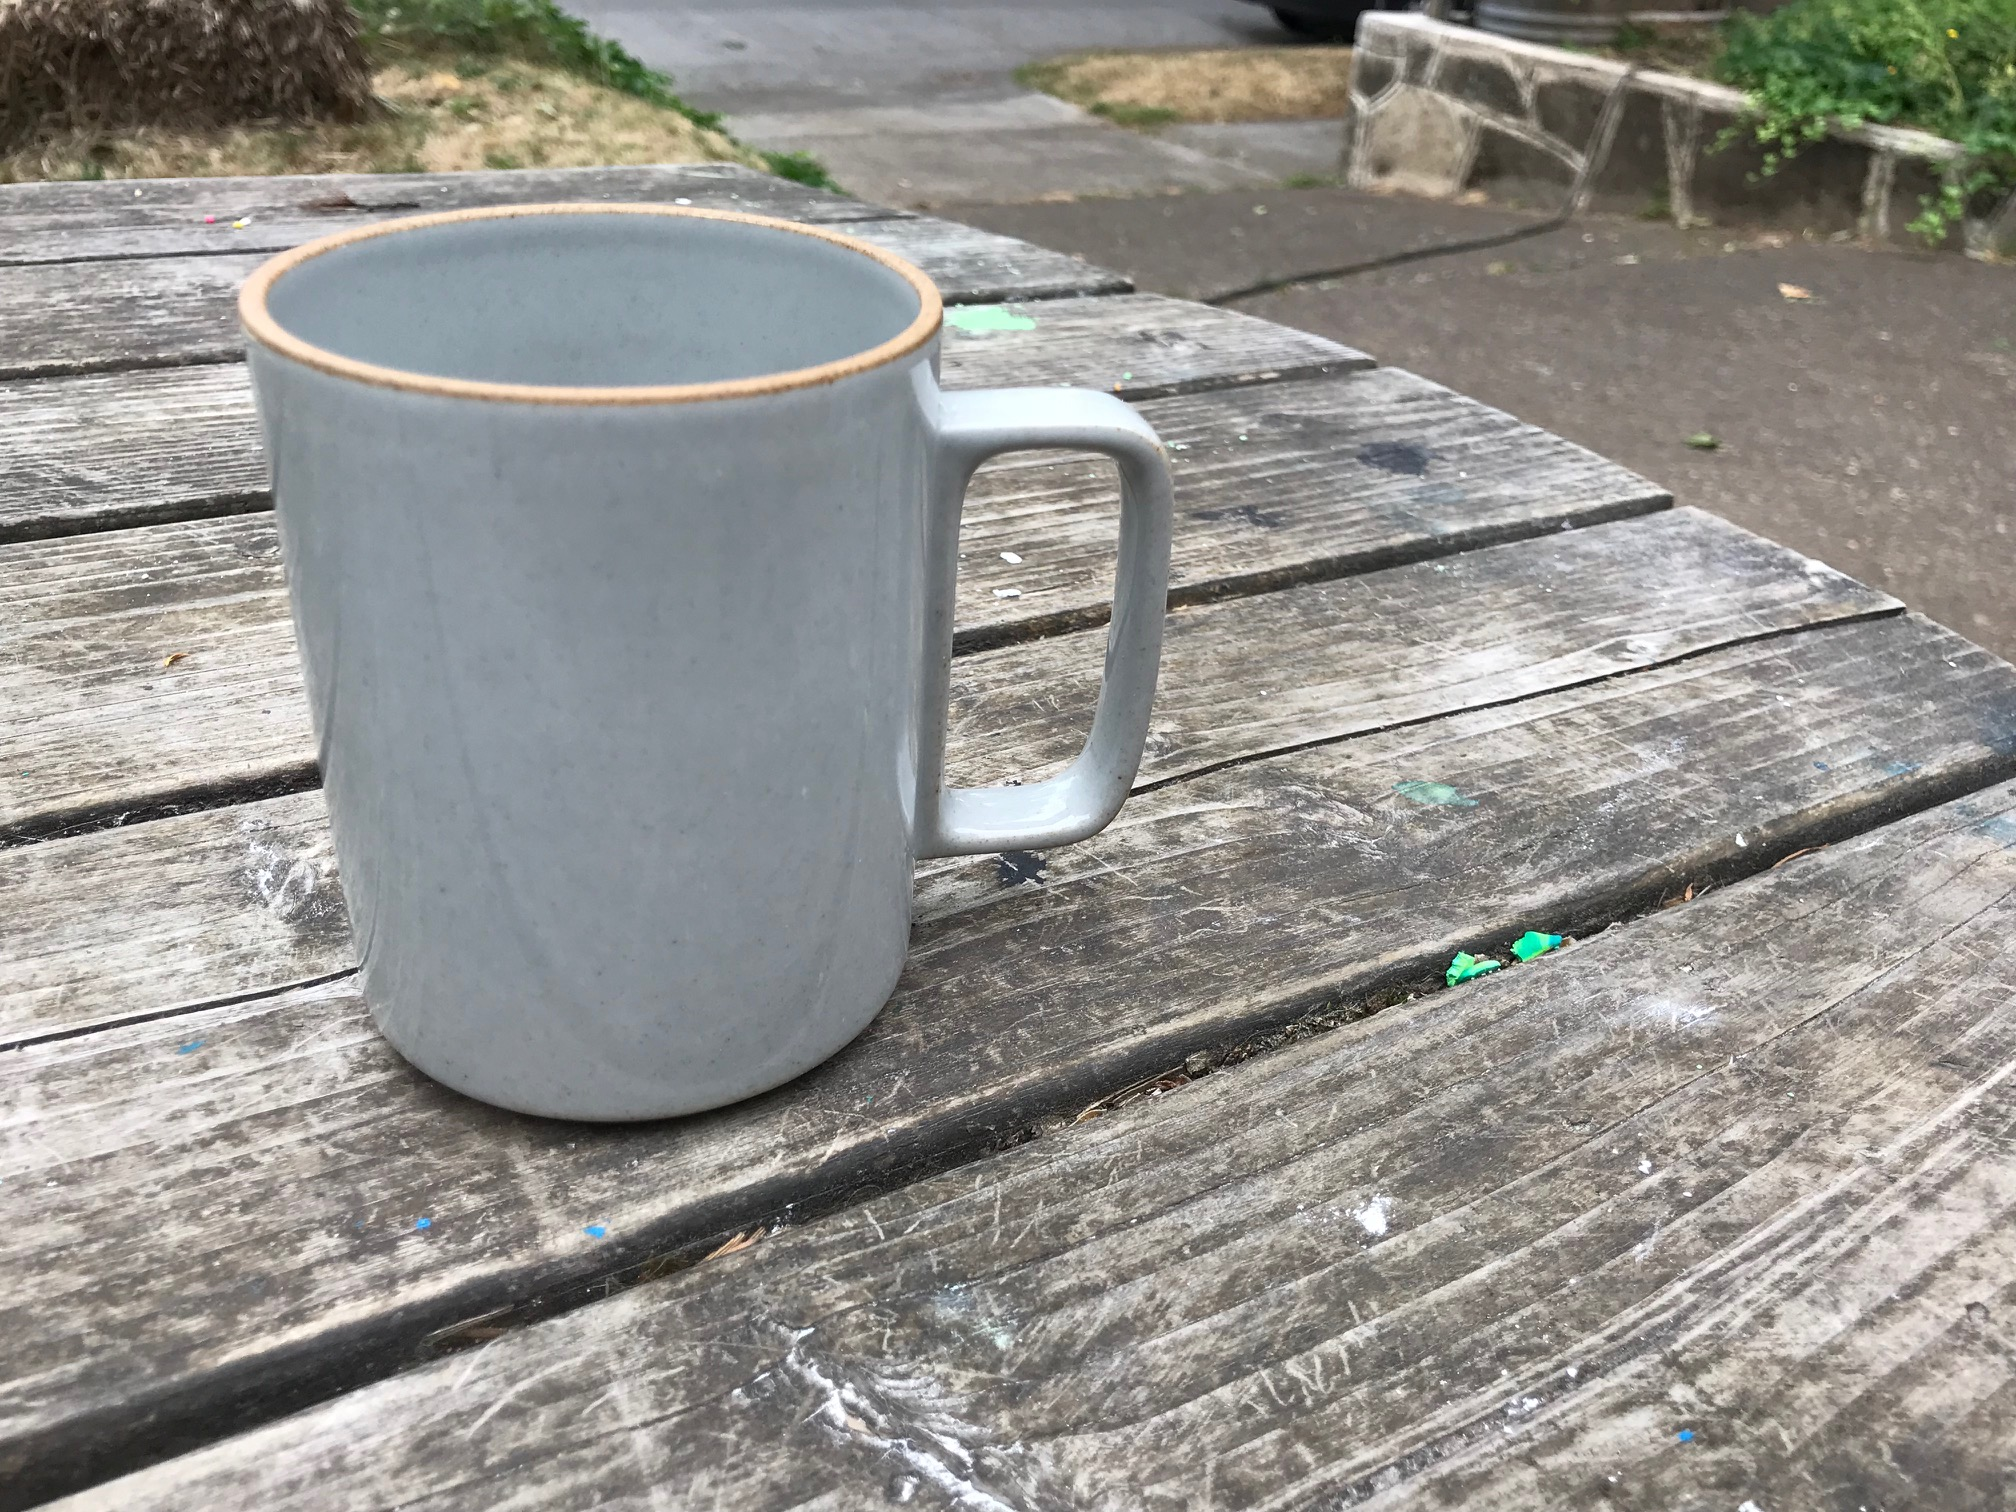 Hasami Porcelain Made In Japan Ceramic Mug: Glazed Surface = Non-Detect for Lead, Unglazed Substrate = 30 ppm Lead (safe by all standards.)